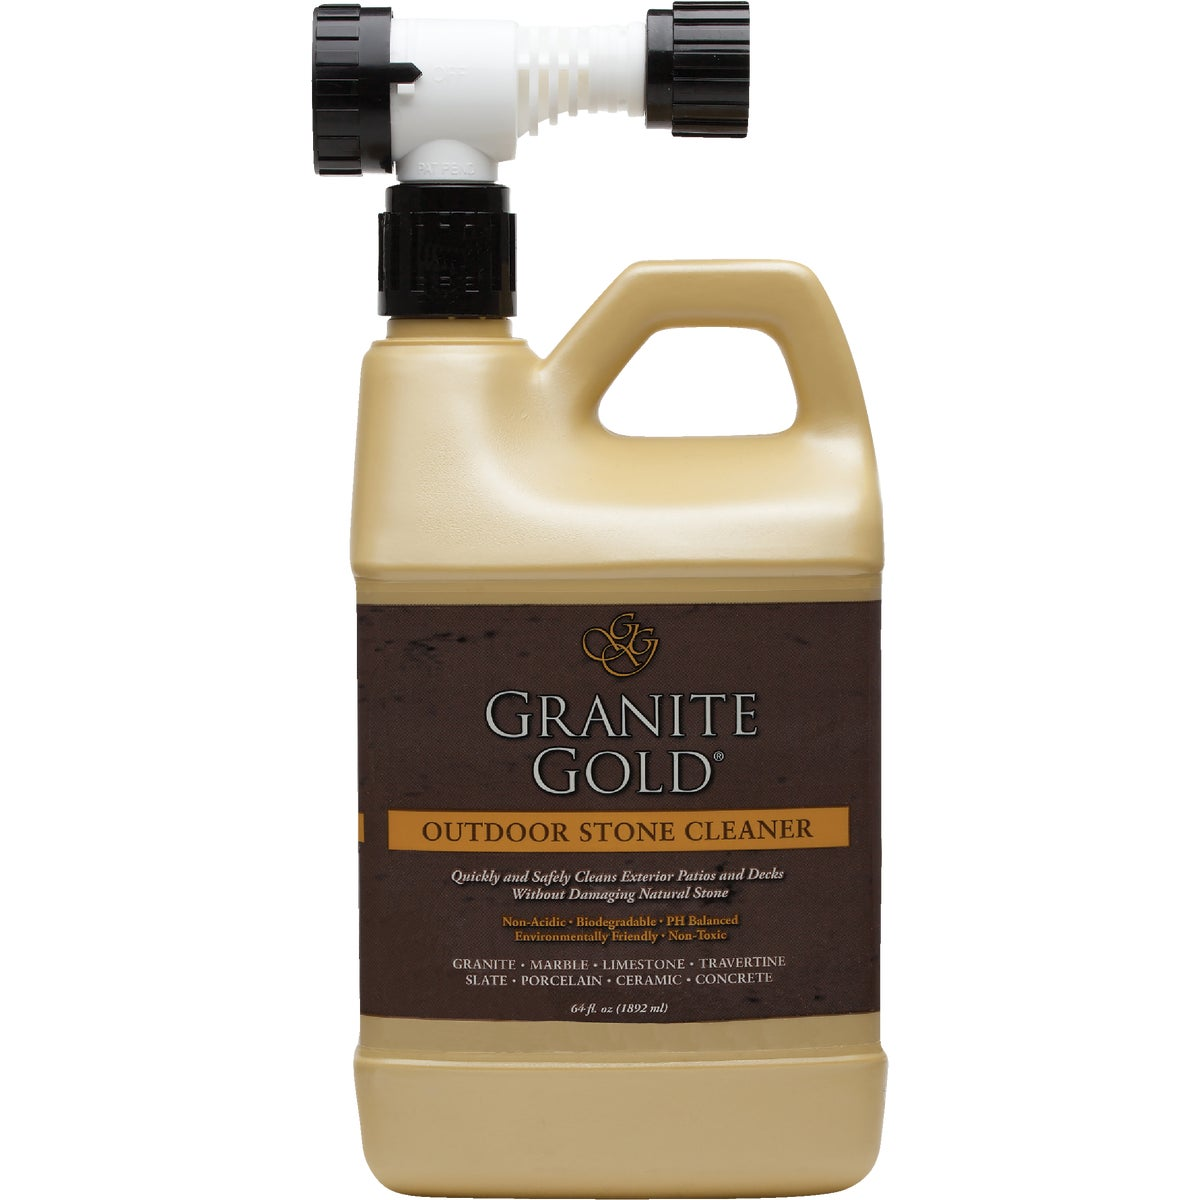 64Oz Outdr Stone Cleaner